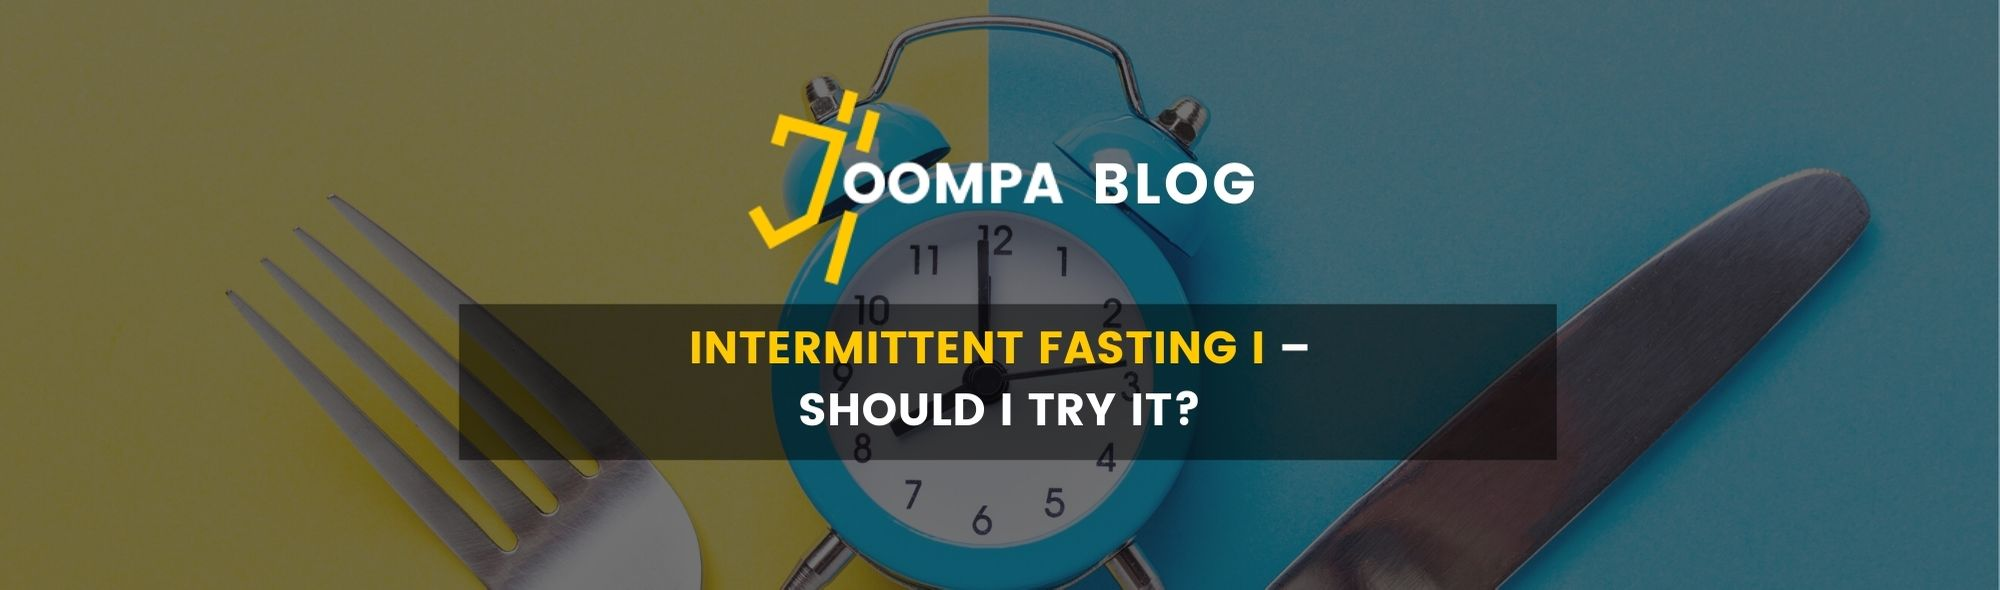 Intermittent Fasting I – Should I try it?